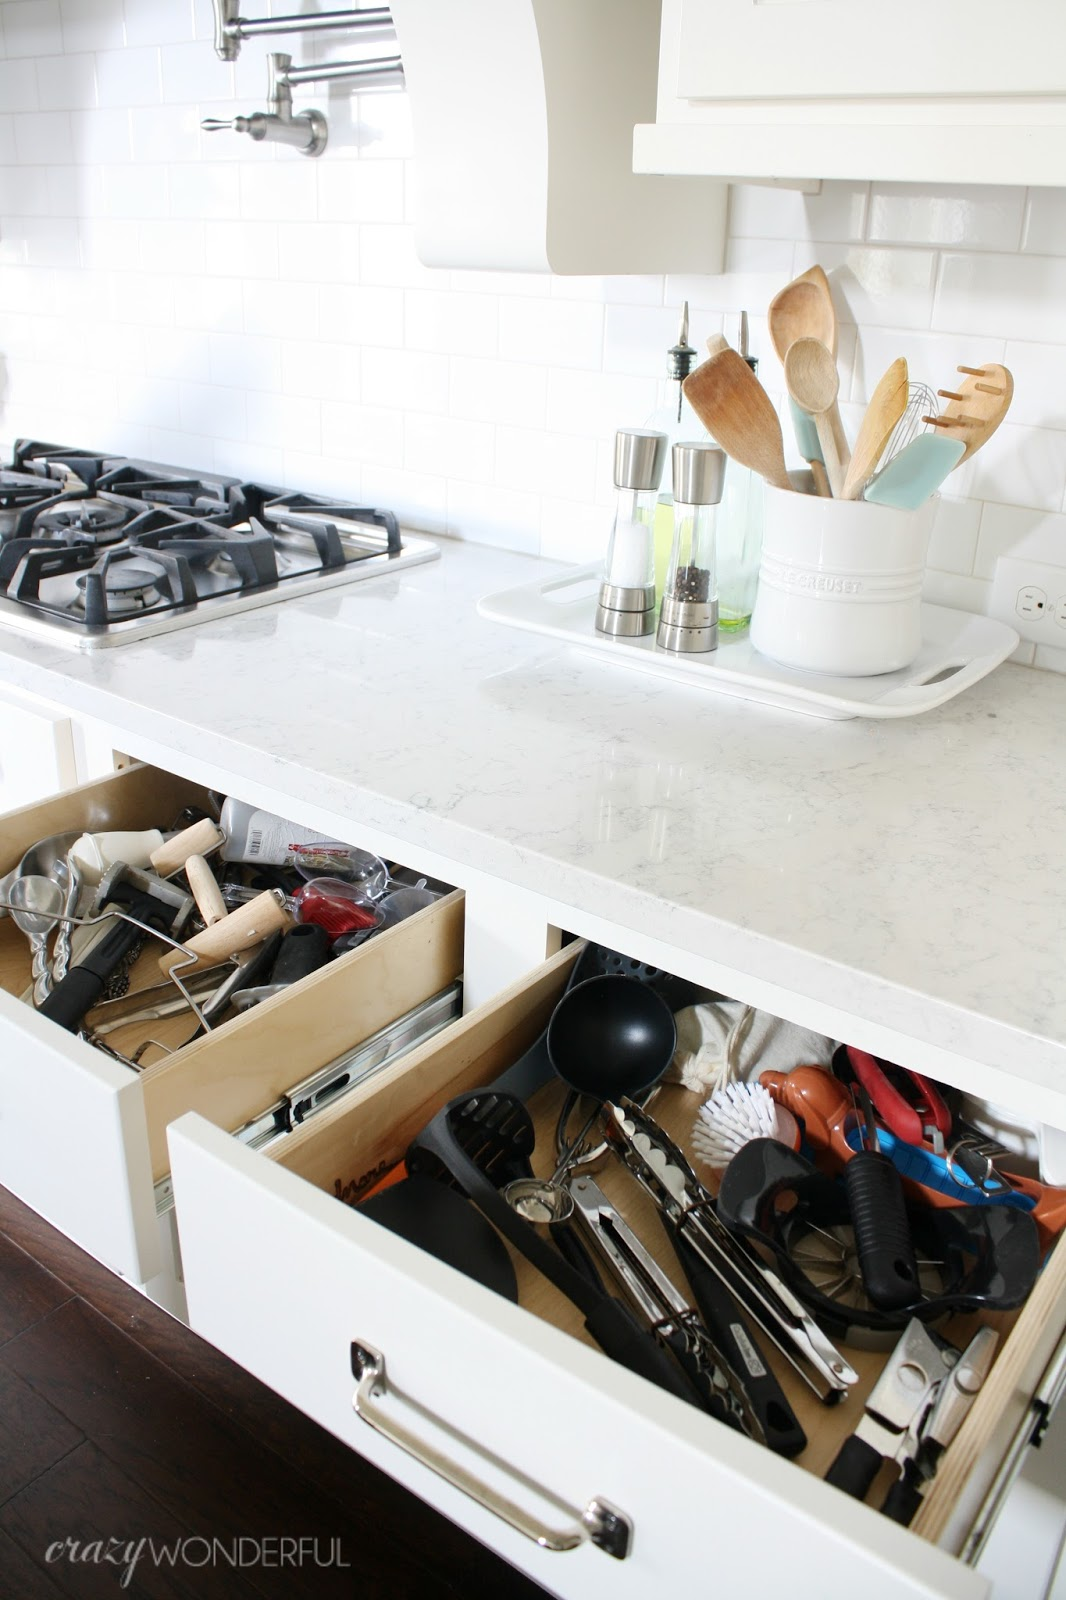 Diy custom kitchen drawer organizers crazy wonderful for Premade kitchen drawers